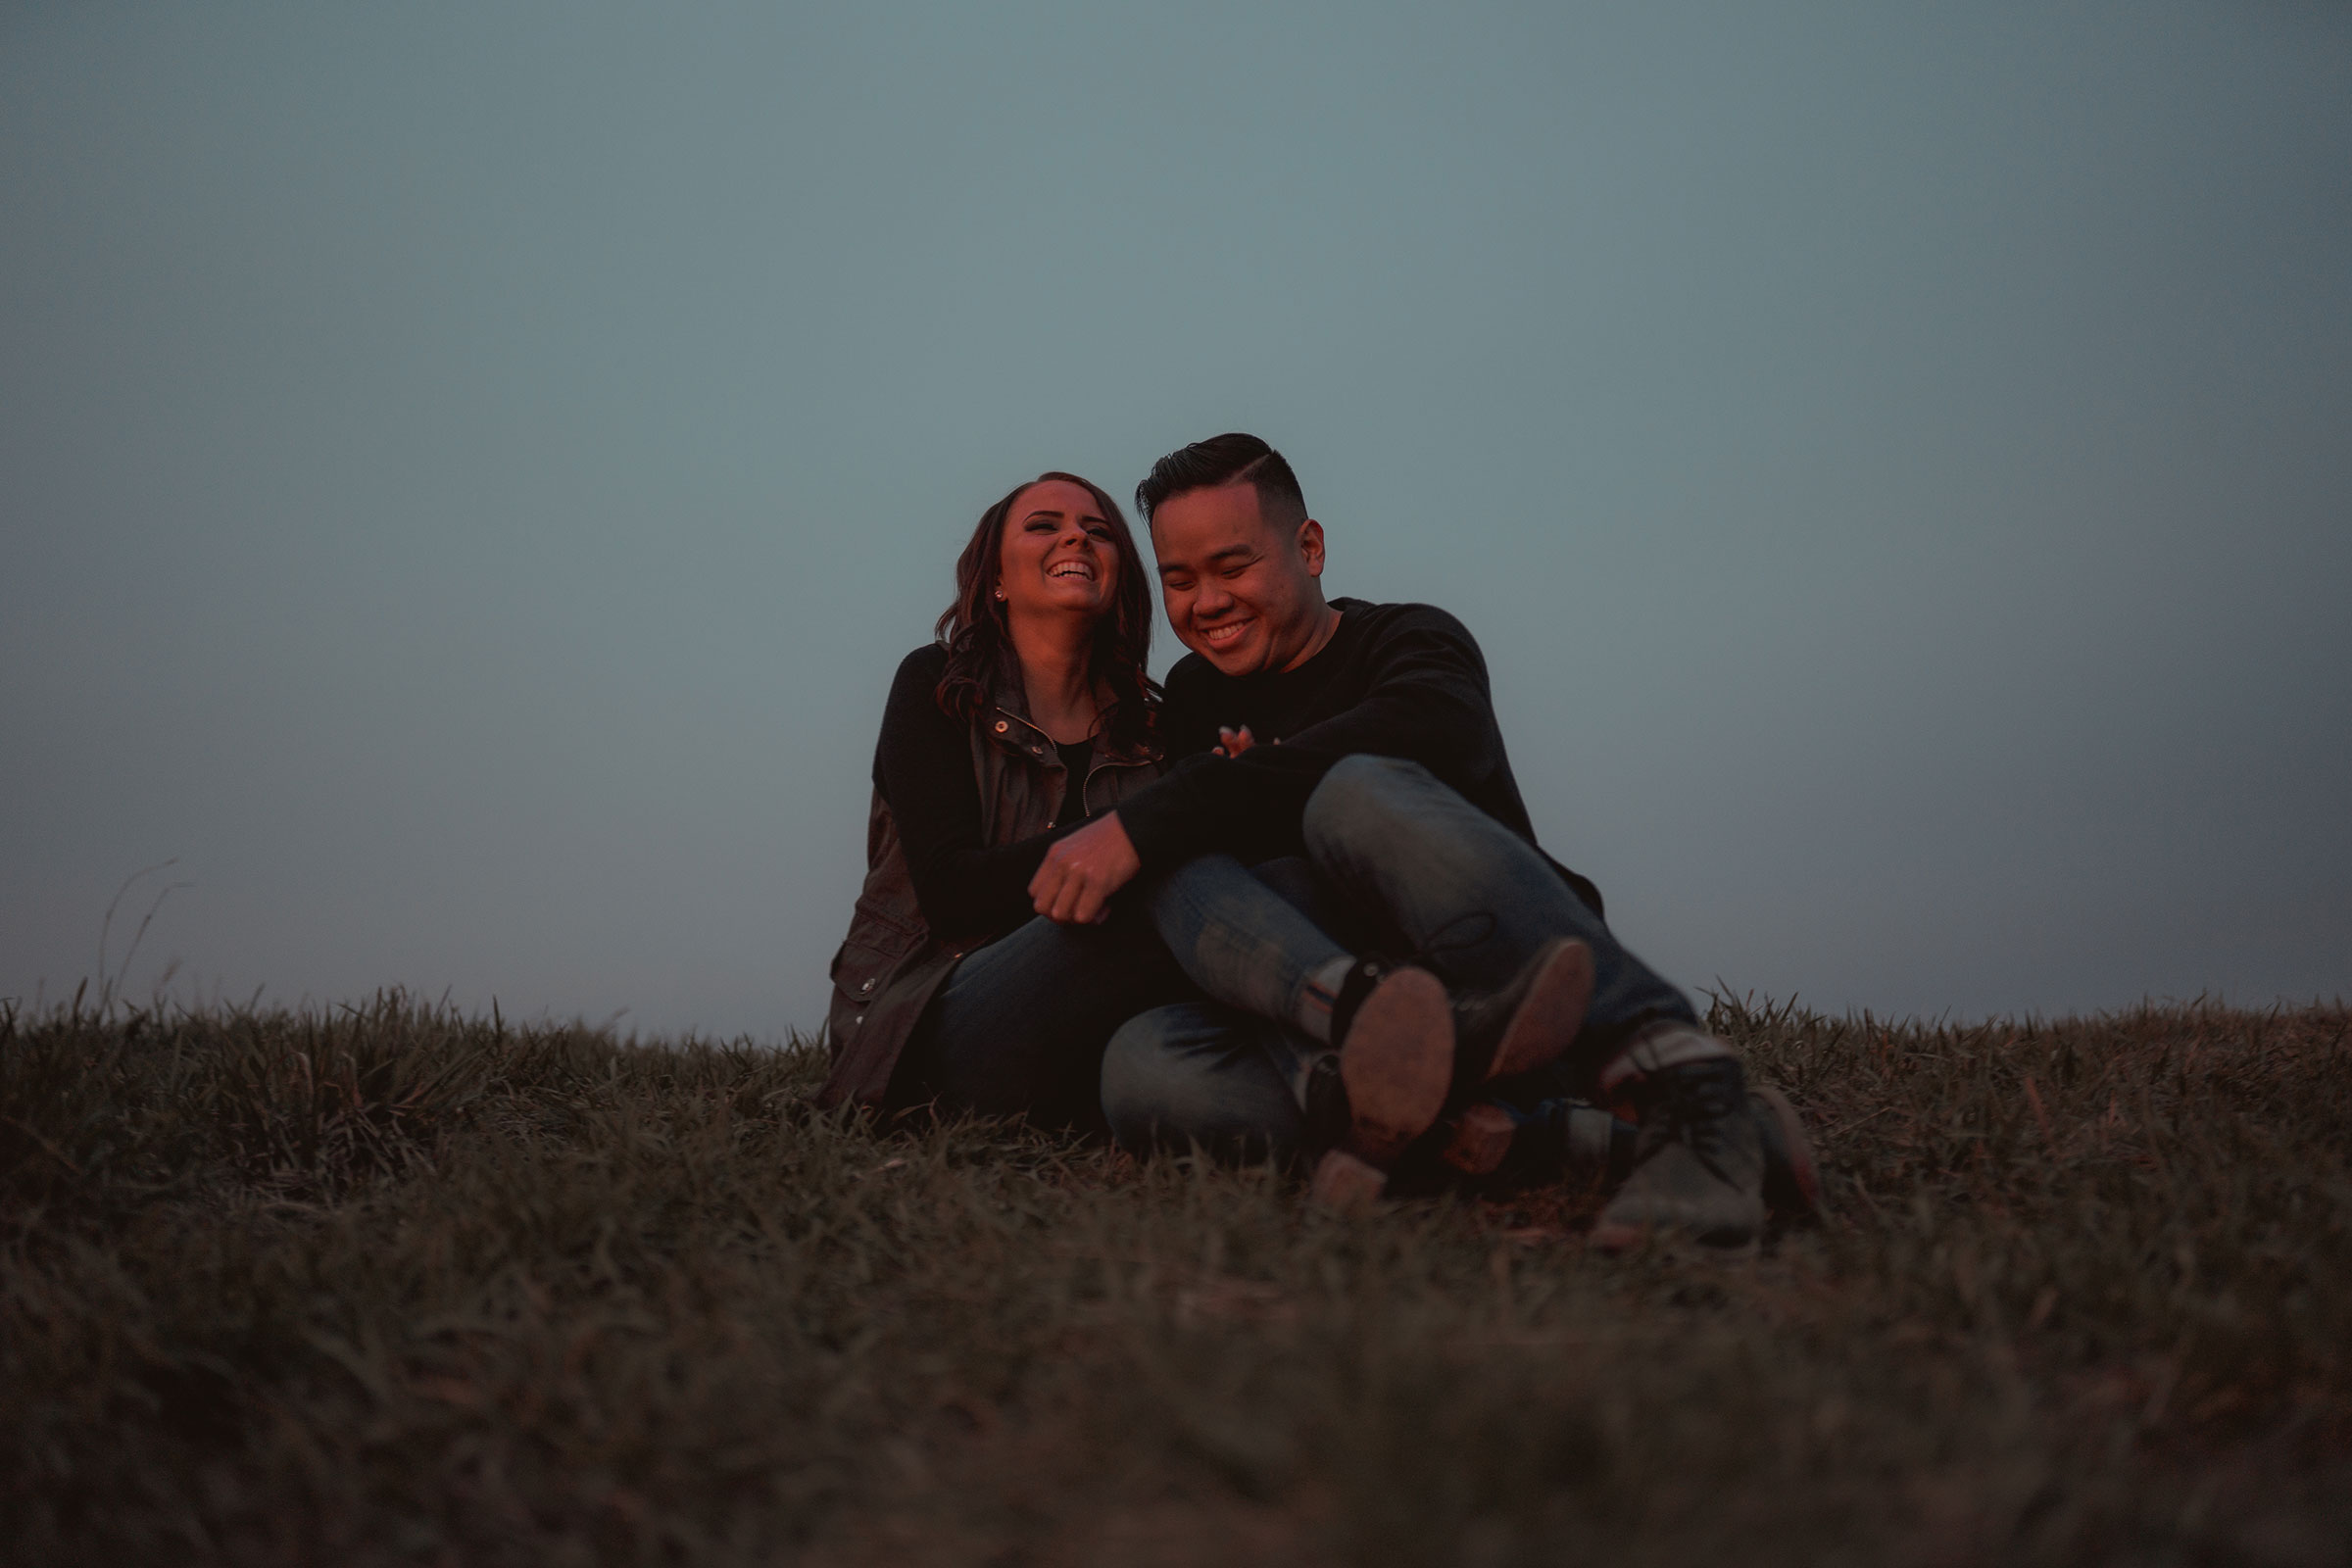 couple-sitting-on-hill-sunset-laughing-and-cuddling-winterset-iowa-raelyn-ramey-photography.jpg